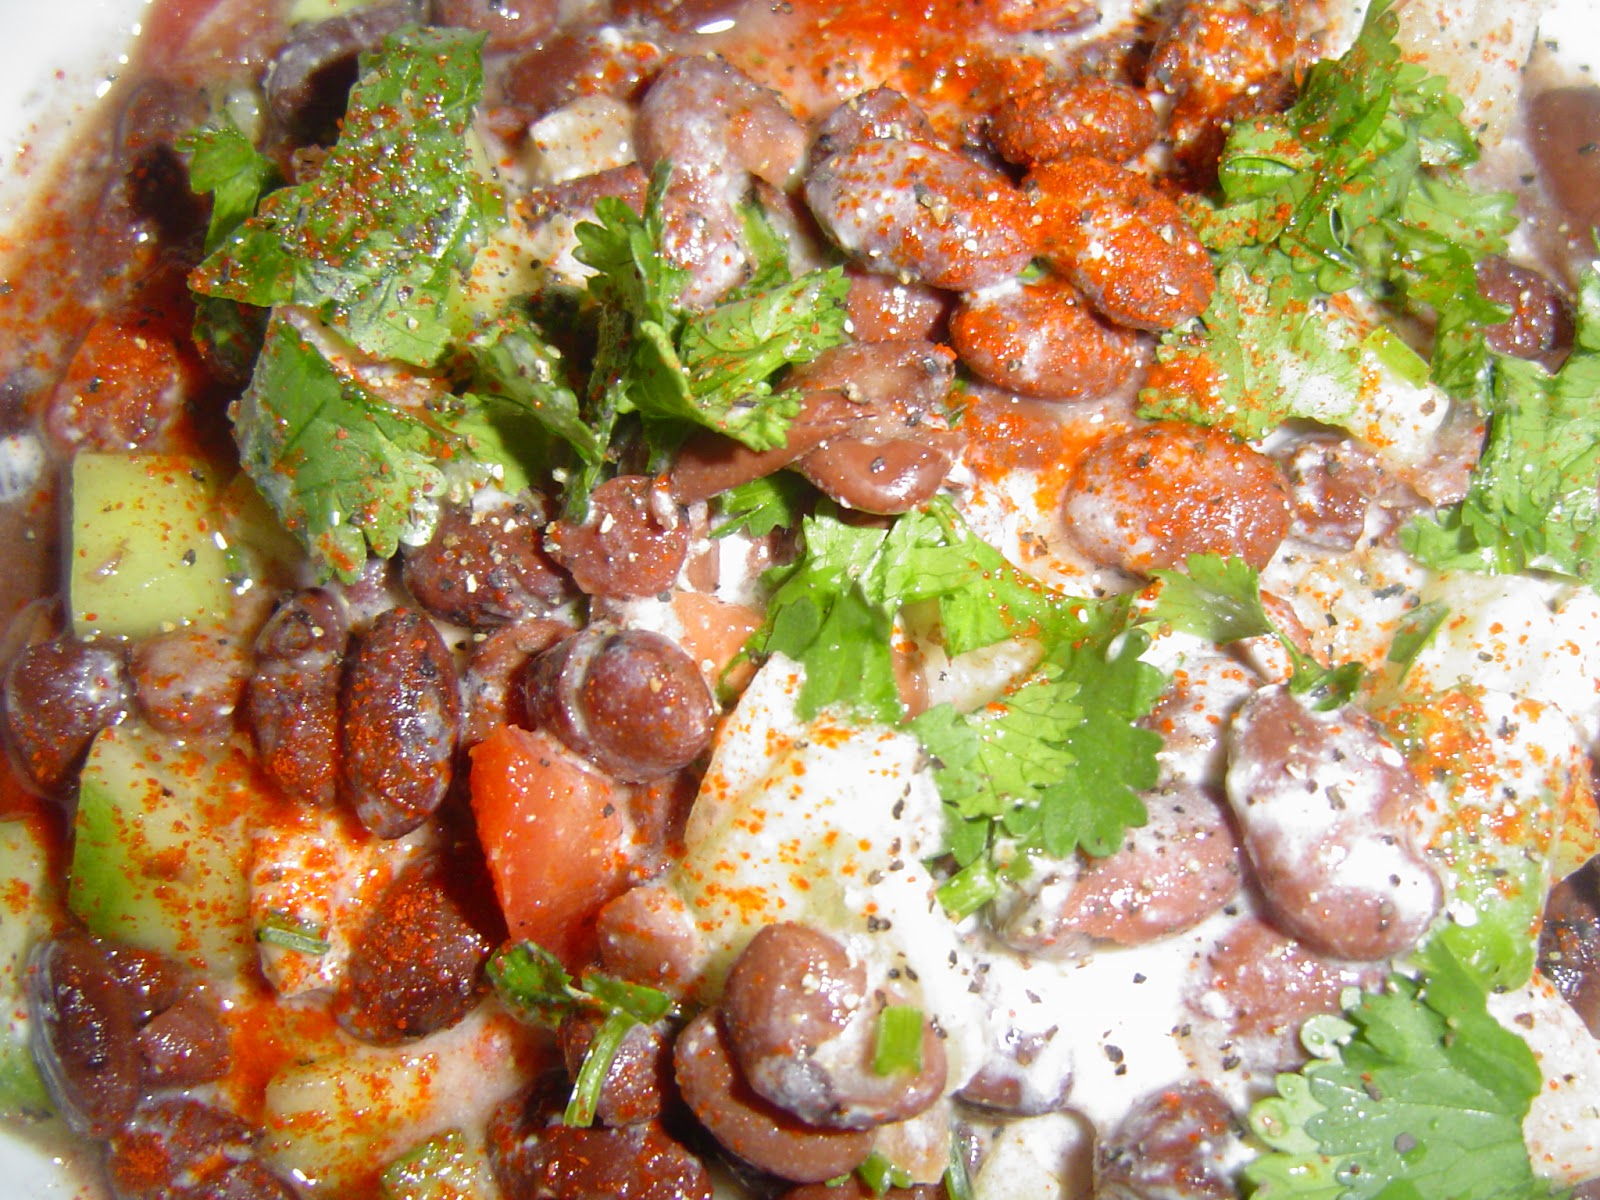 Note. Red kidney beans cooks very wellin slow cooker.